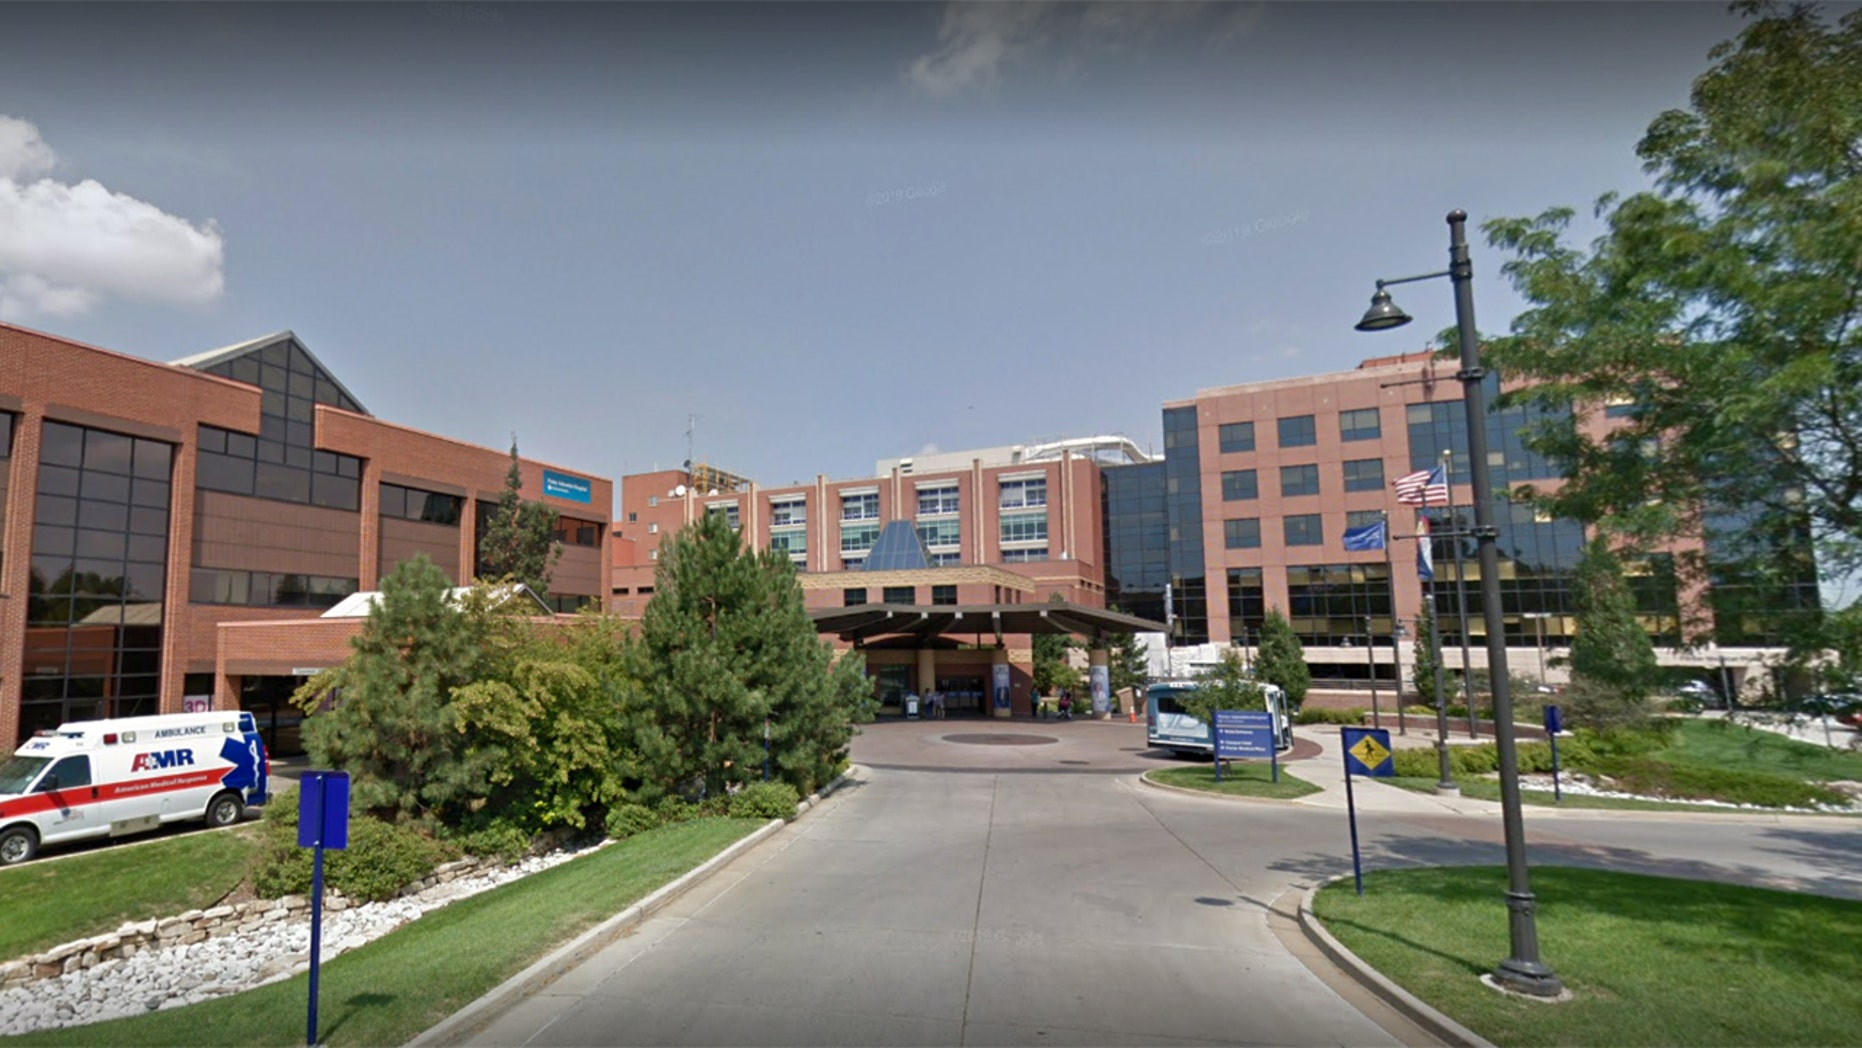 CO hospital faces lawsuit over severe infections causing at least 1 death